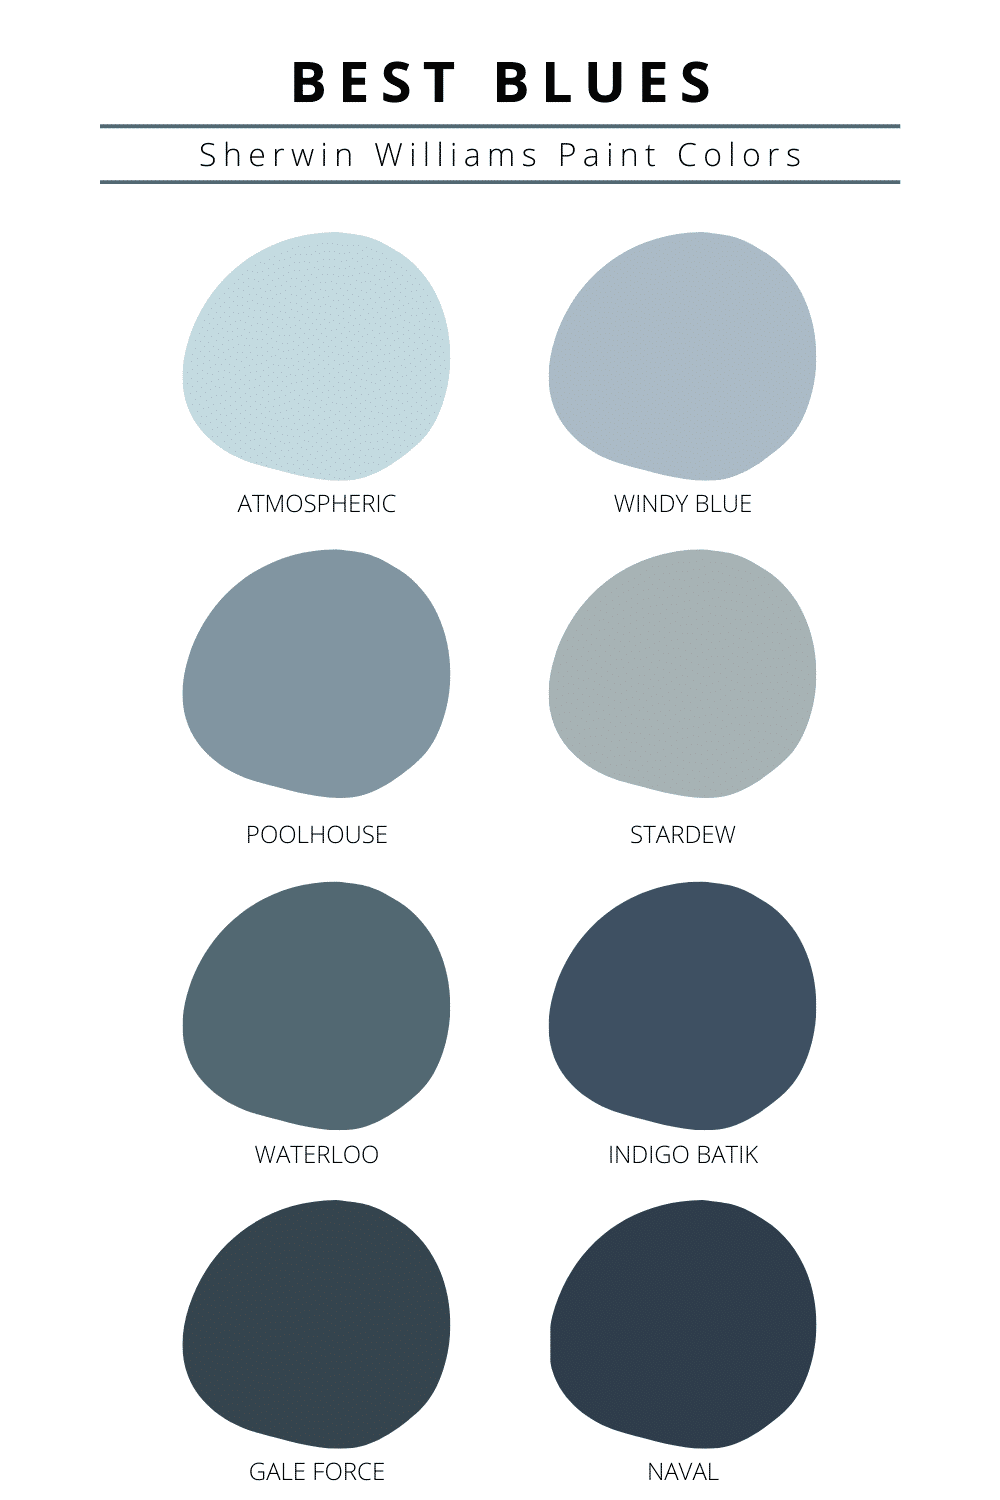 Check out the best selling and top used Sherwin Williams Best Blue Paint Colors of 2020. You'll see the rooms painted in the color and discuss the undertones and where they work best. #swblues #swwaterloo #swnaval #swatmospheric #swstardew #sherwinwilliams